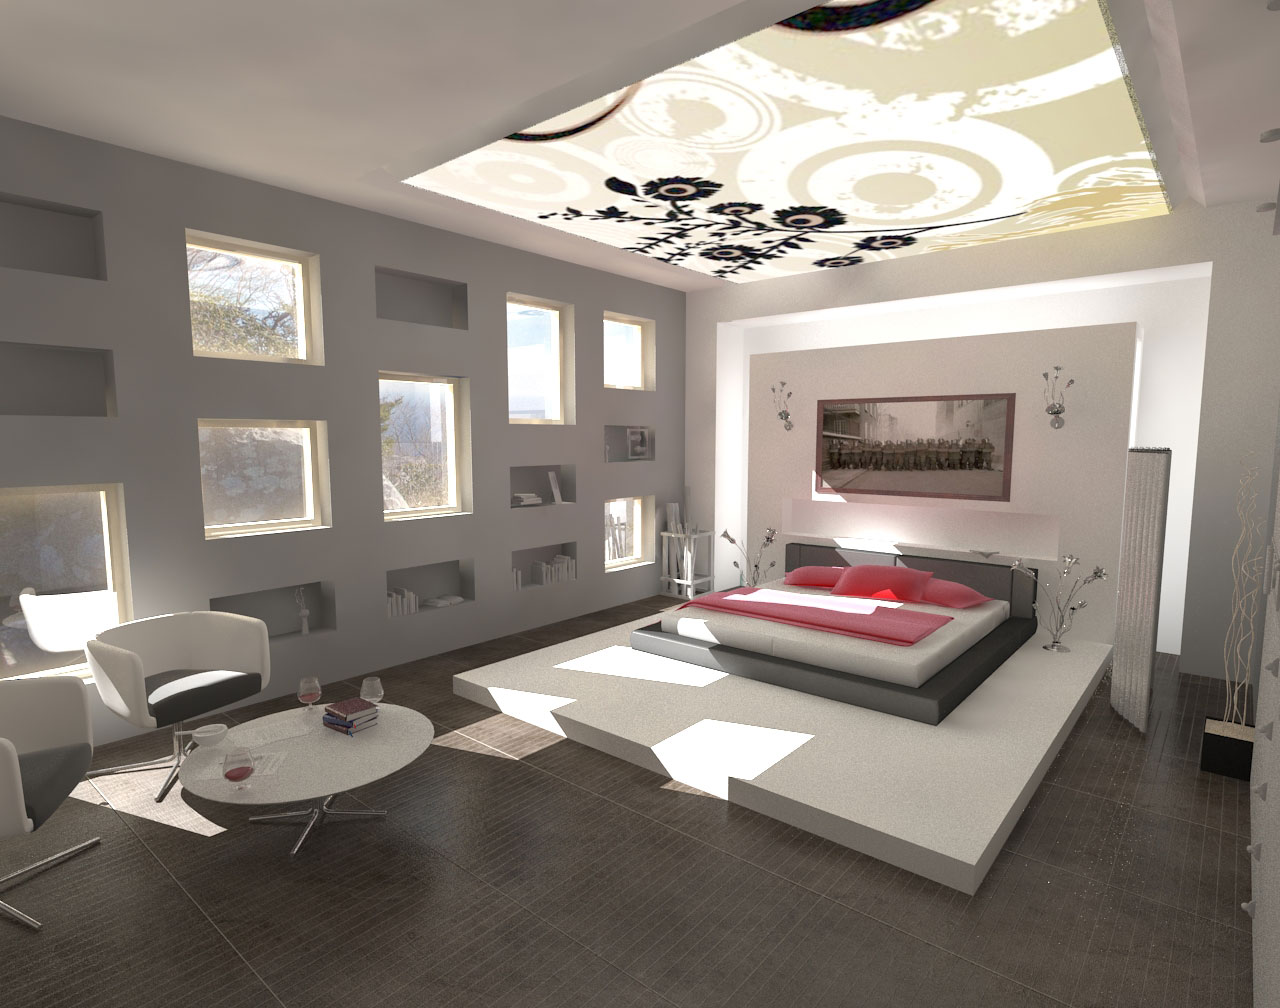 Amazing Modern Home Interior Design Bedrooms 1280 x 1008 · 183 kB · jpeg